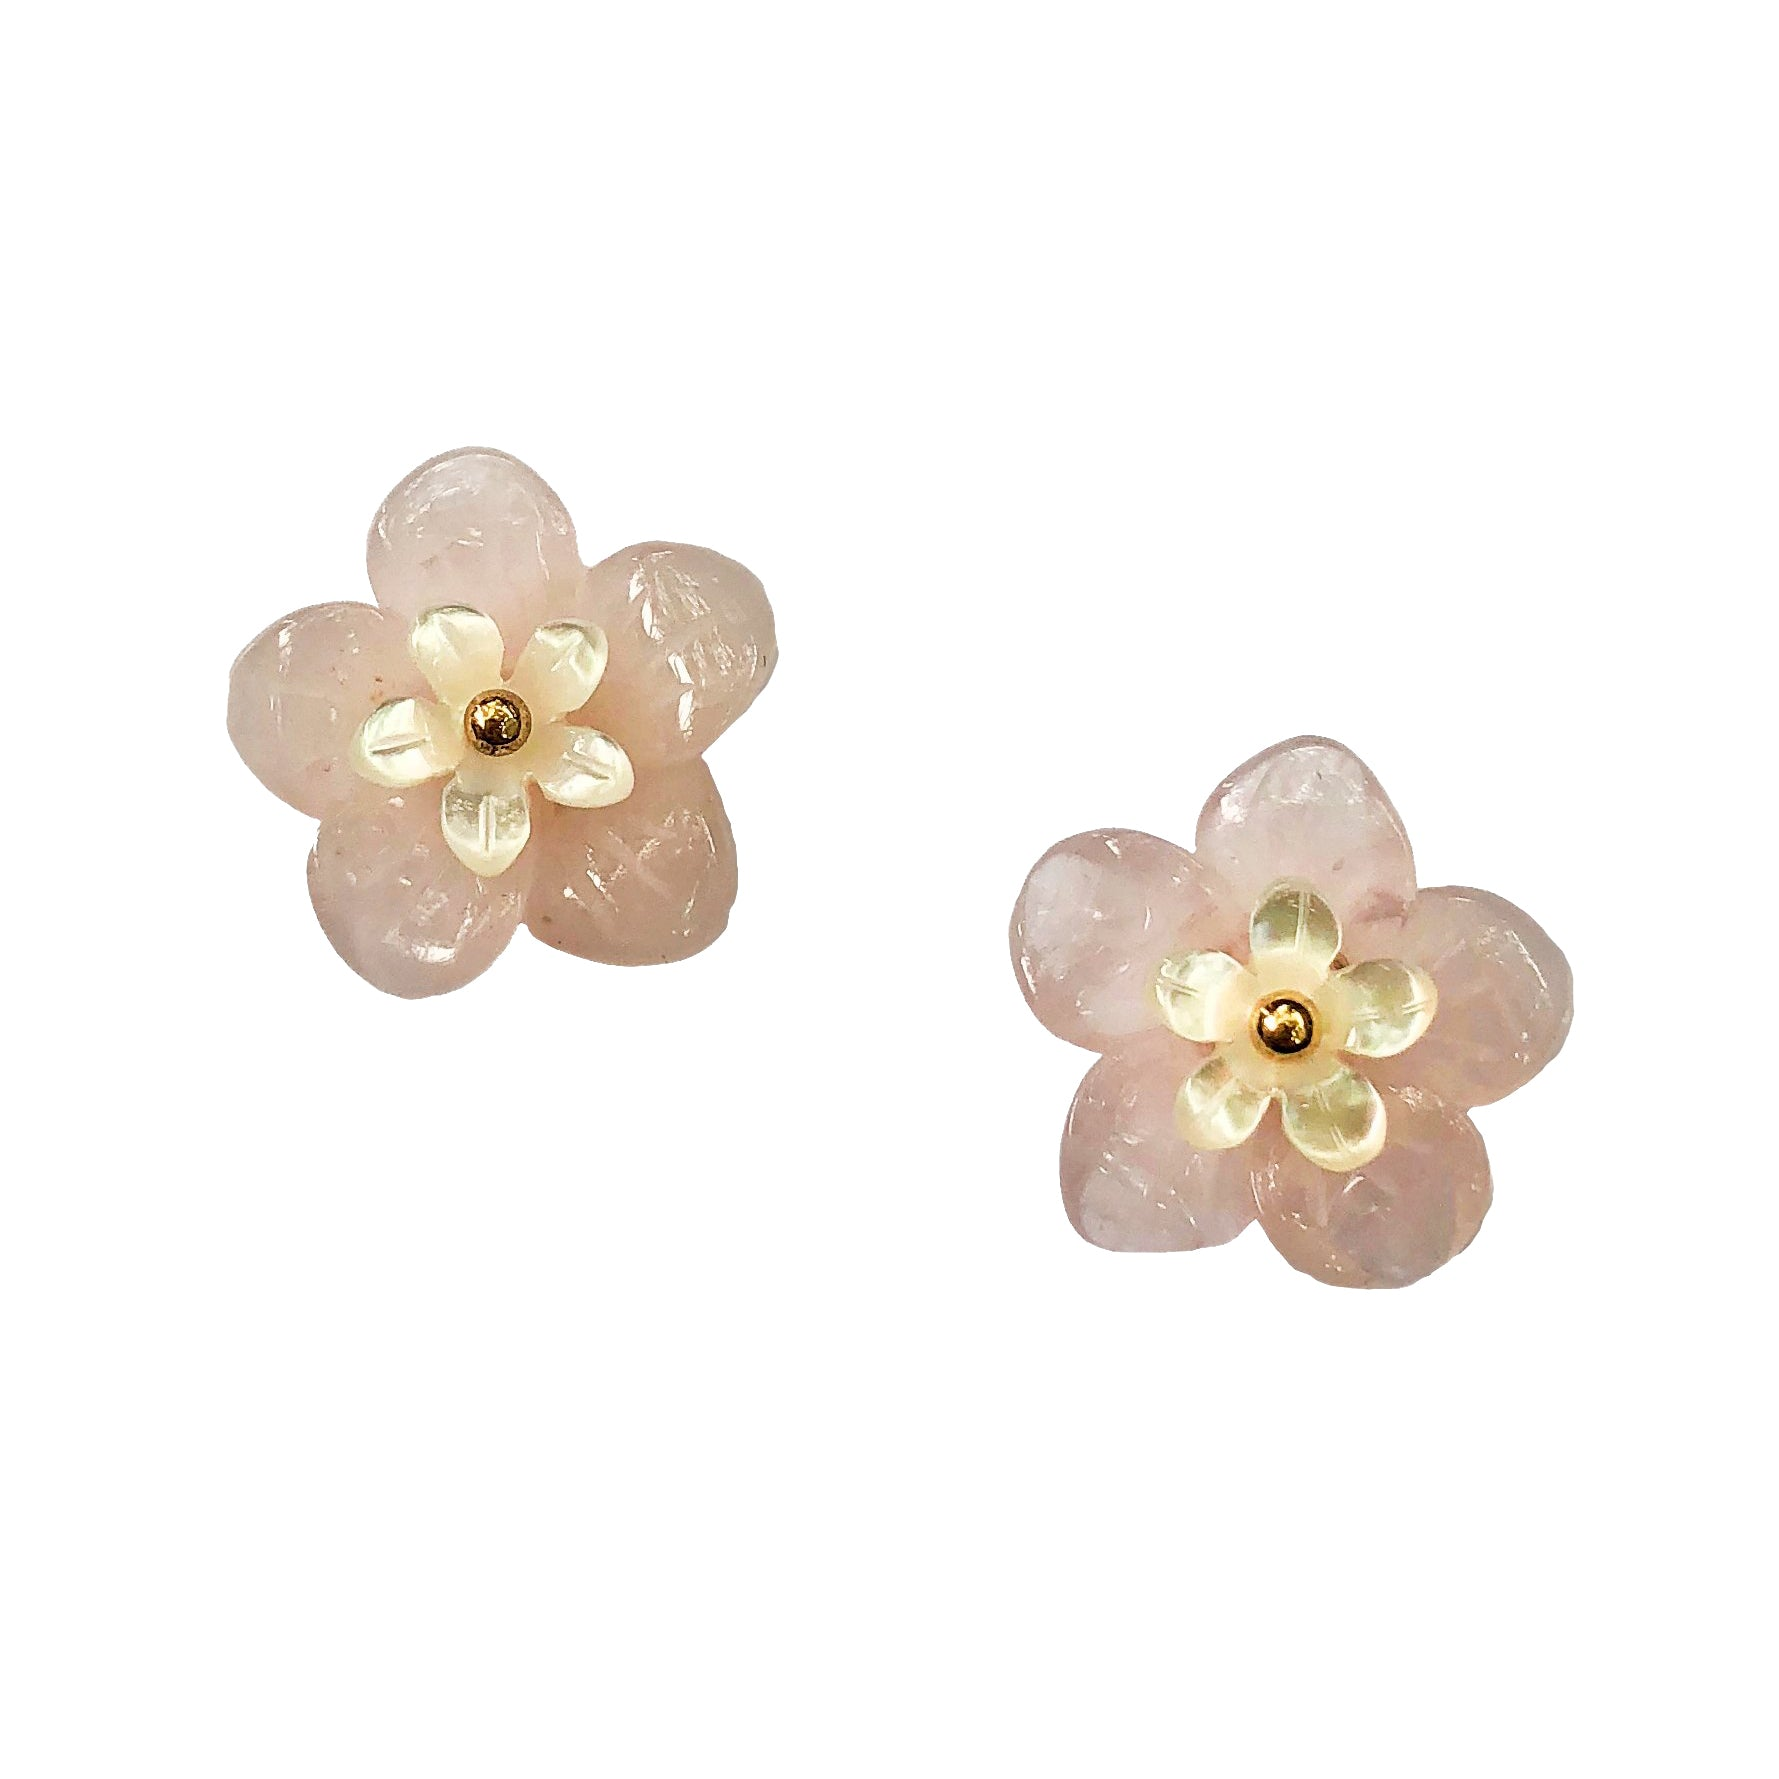 Chalmers Street Baby Flower Stud Earrings